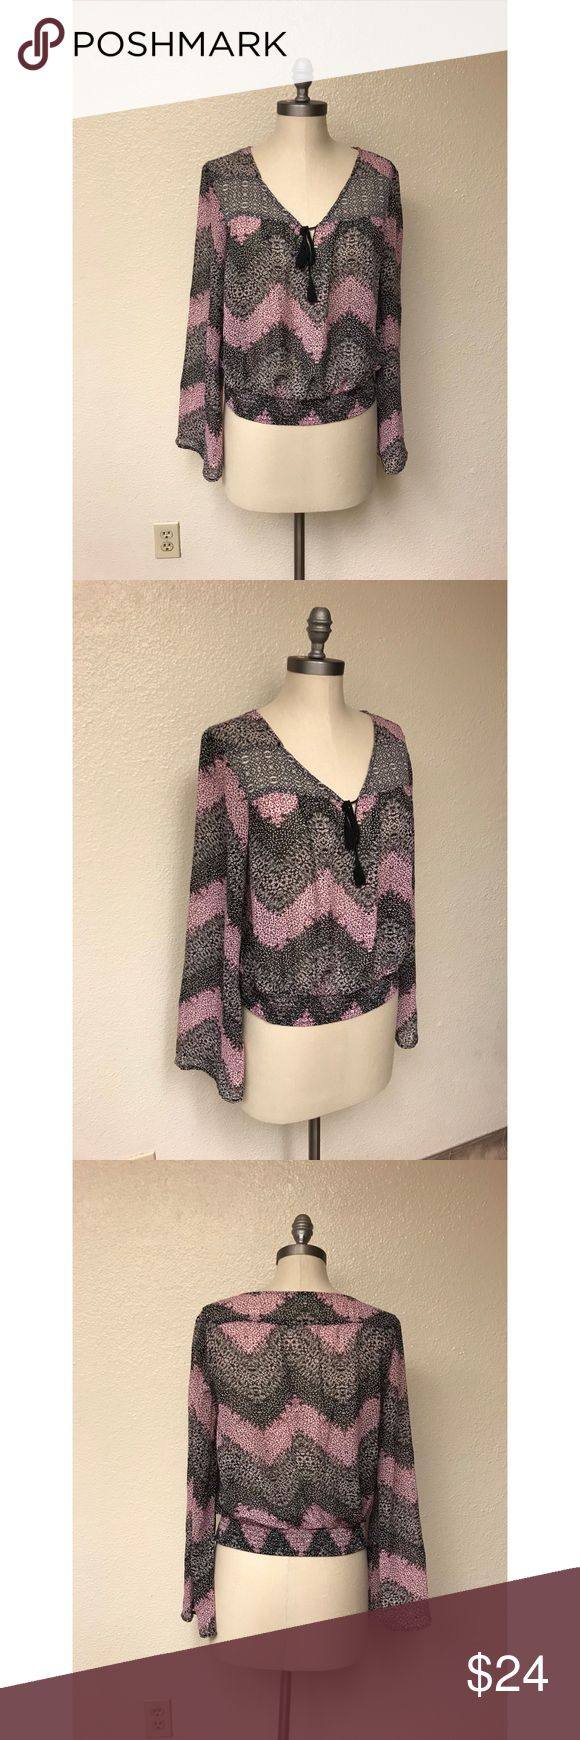 ❤️Love + Fire Chevron Top❤️ Excellent condition. Size large. No rips, stains or tears.  Length: 18 1/2 inches Bust: 17 1/2 inches Love + Fire Tops Tees - Long Sleeve